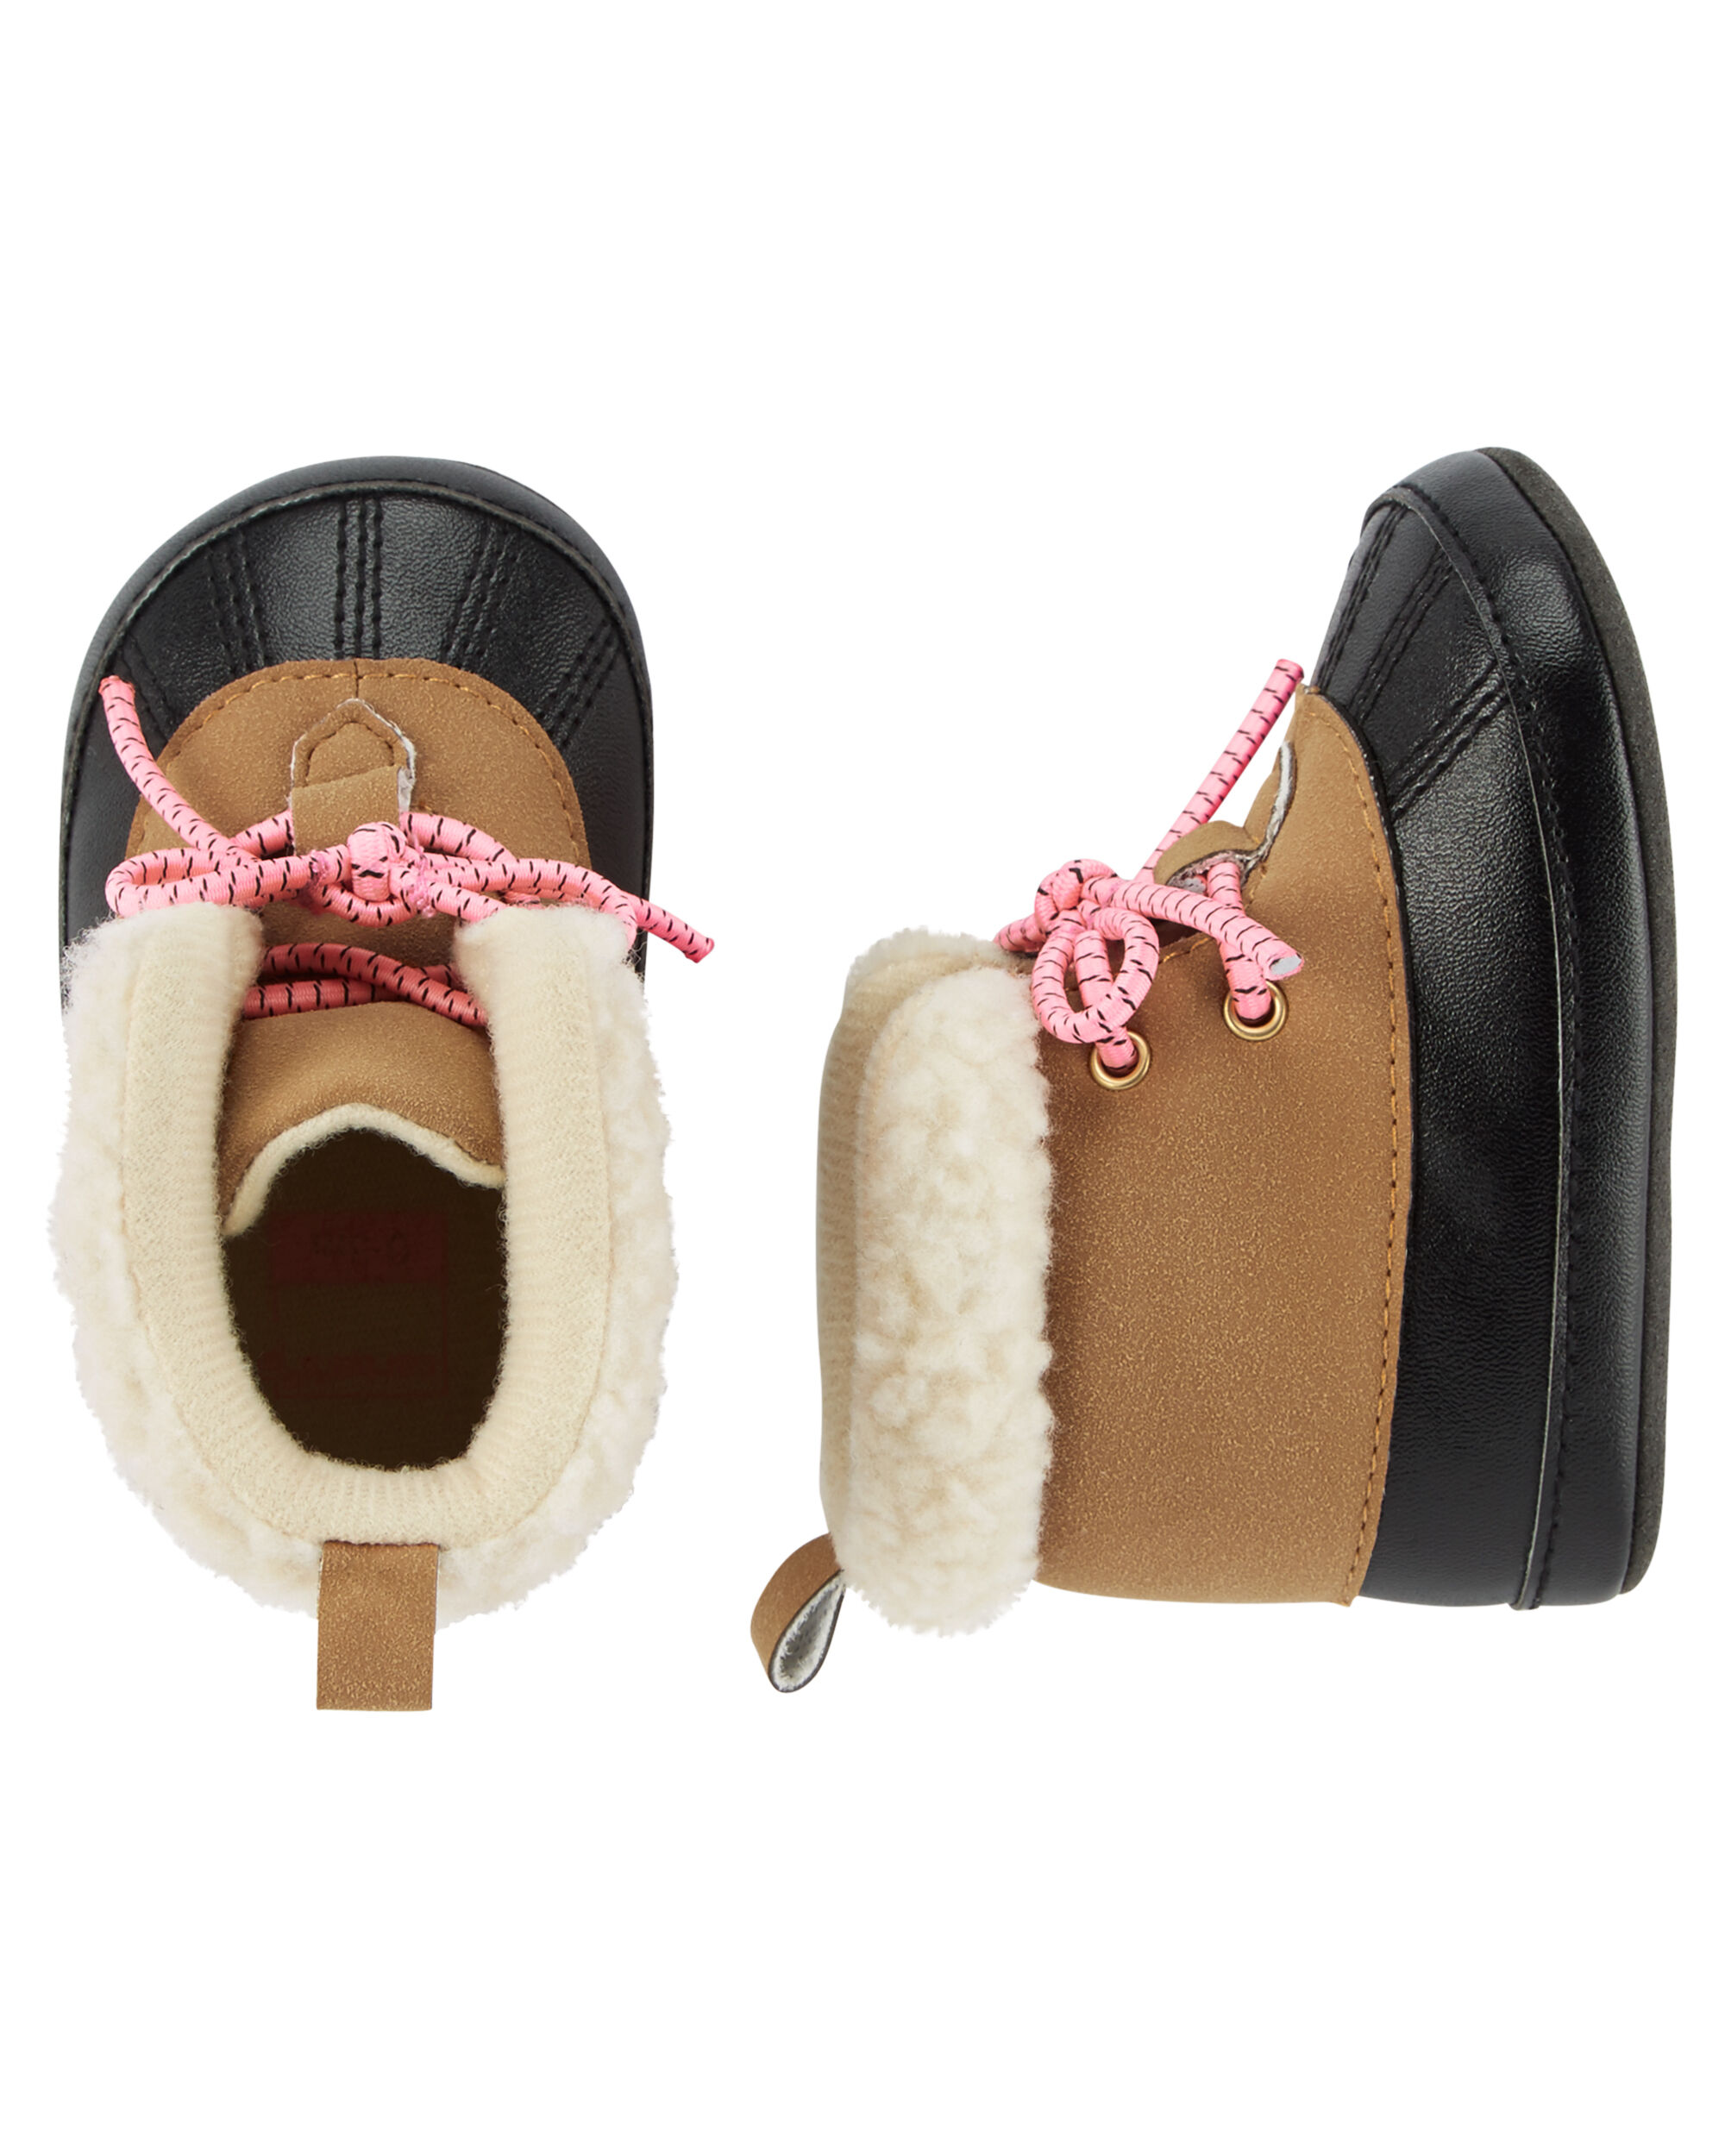 Carter's Duck Boots Baby Shoes